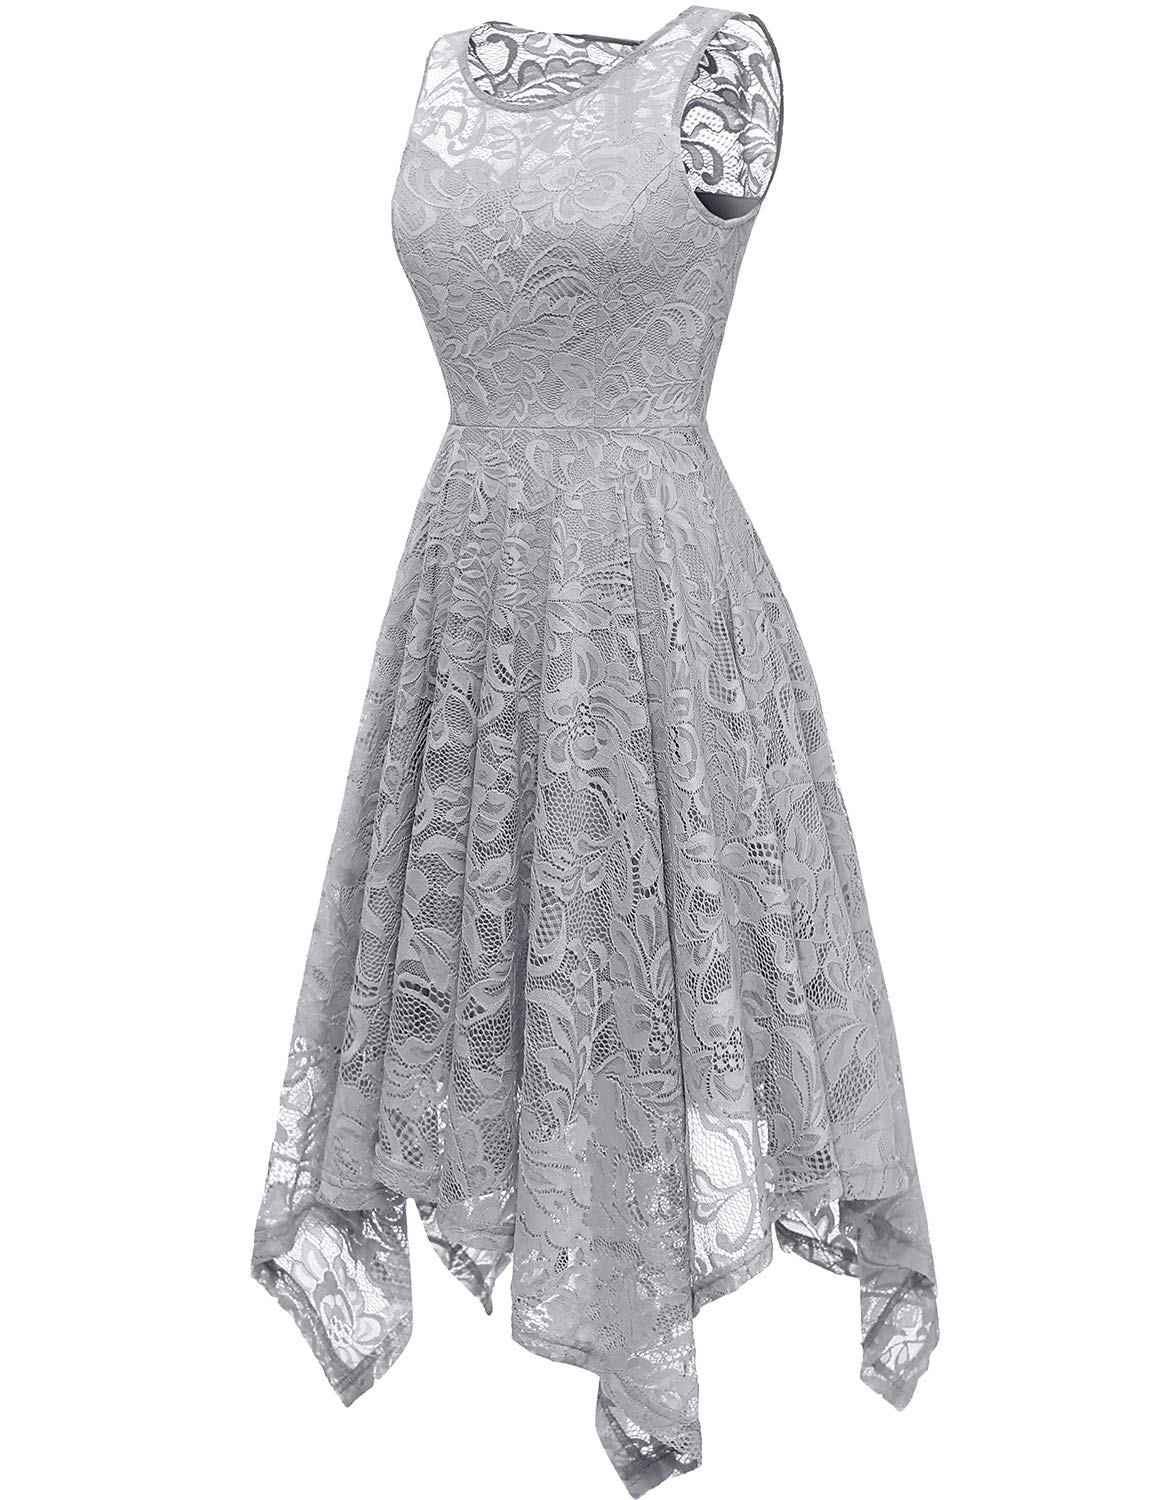 Gardenwed Floral Lace Bridesmaid Dresses Wedding Guest Dress Handkerchief Hem Formal Dresses Cocktail Dresses For Women Grey 2xl